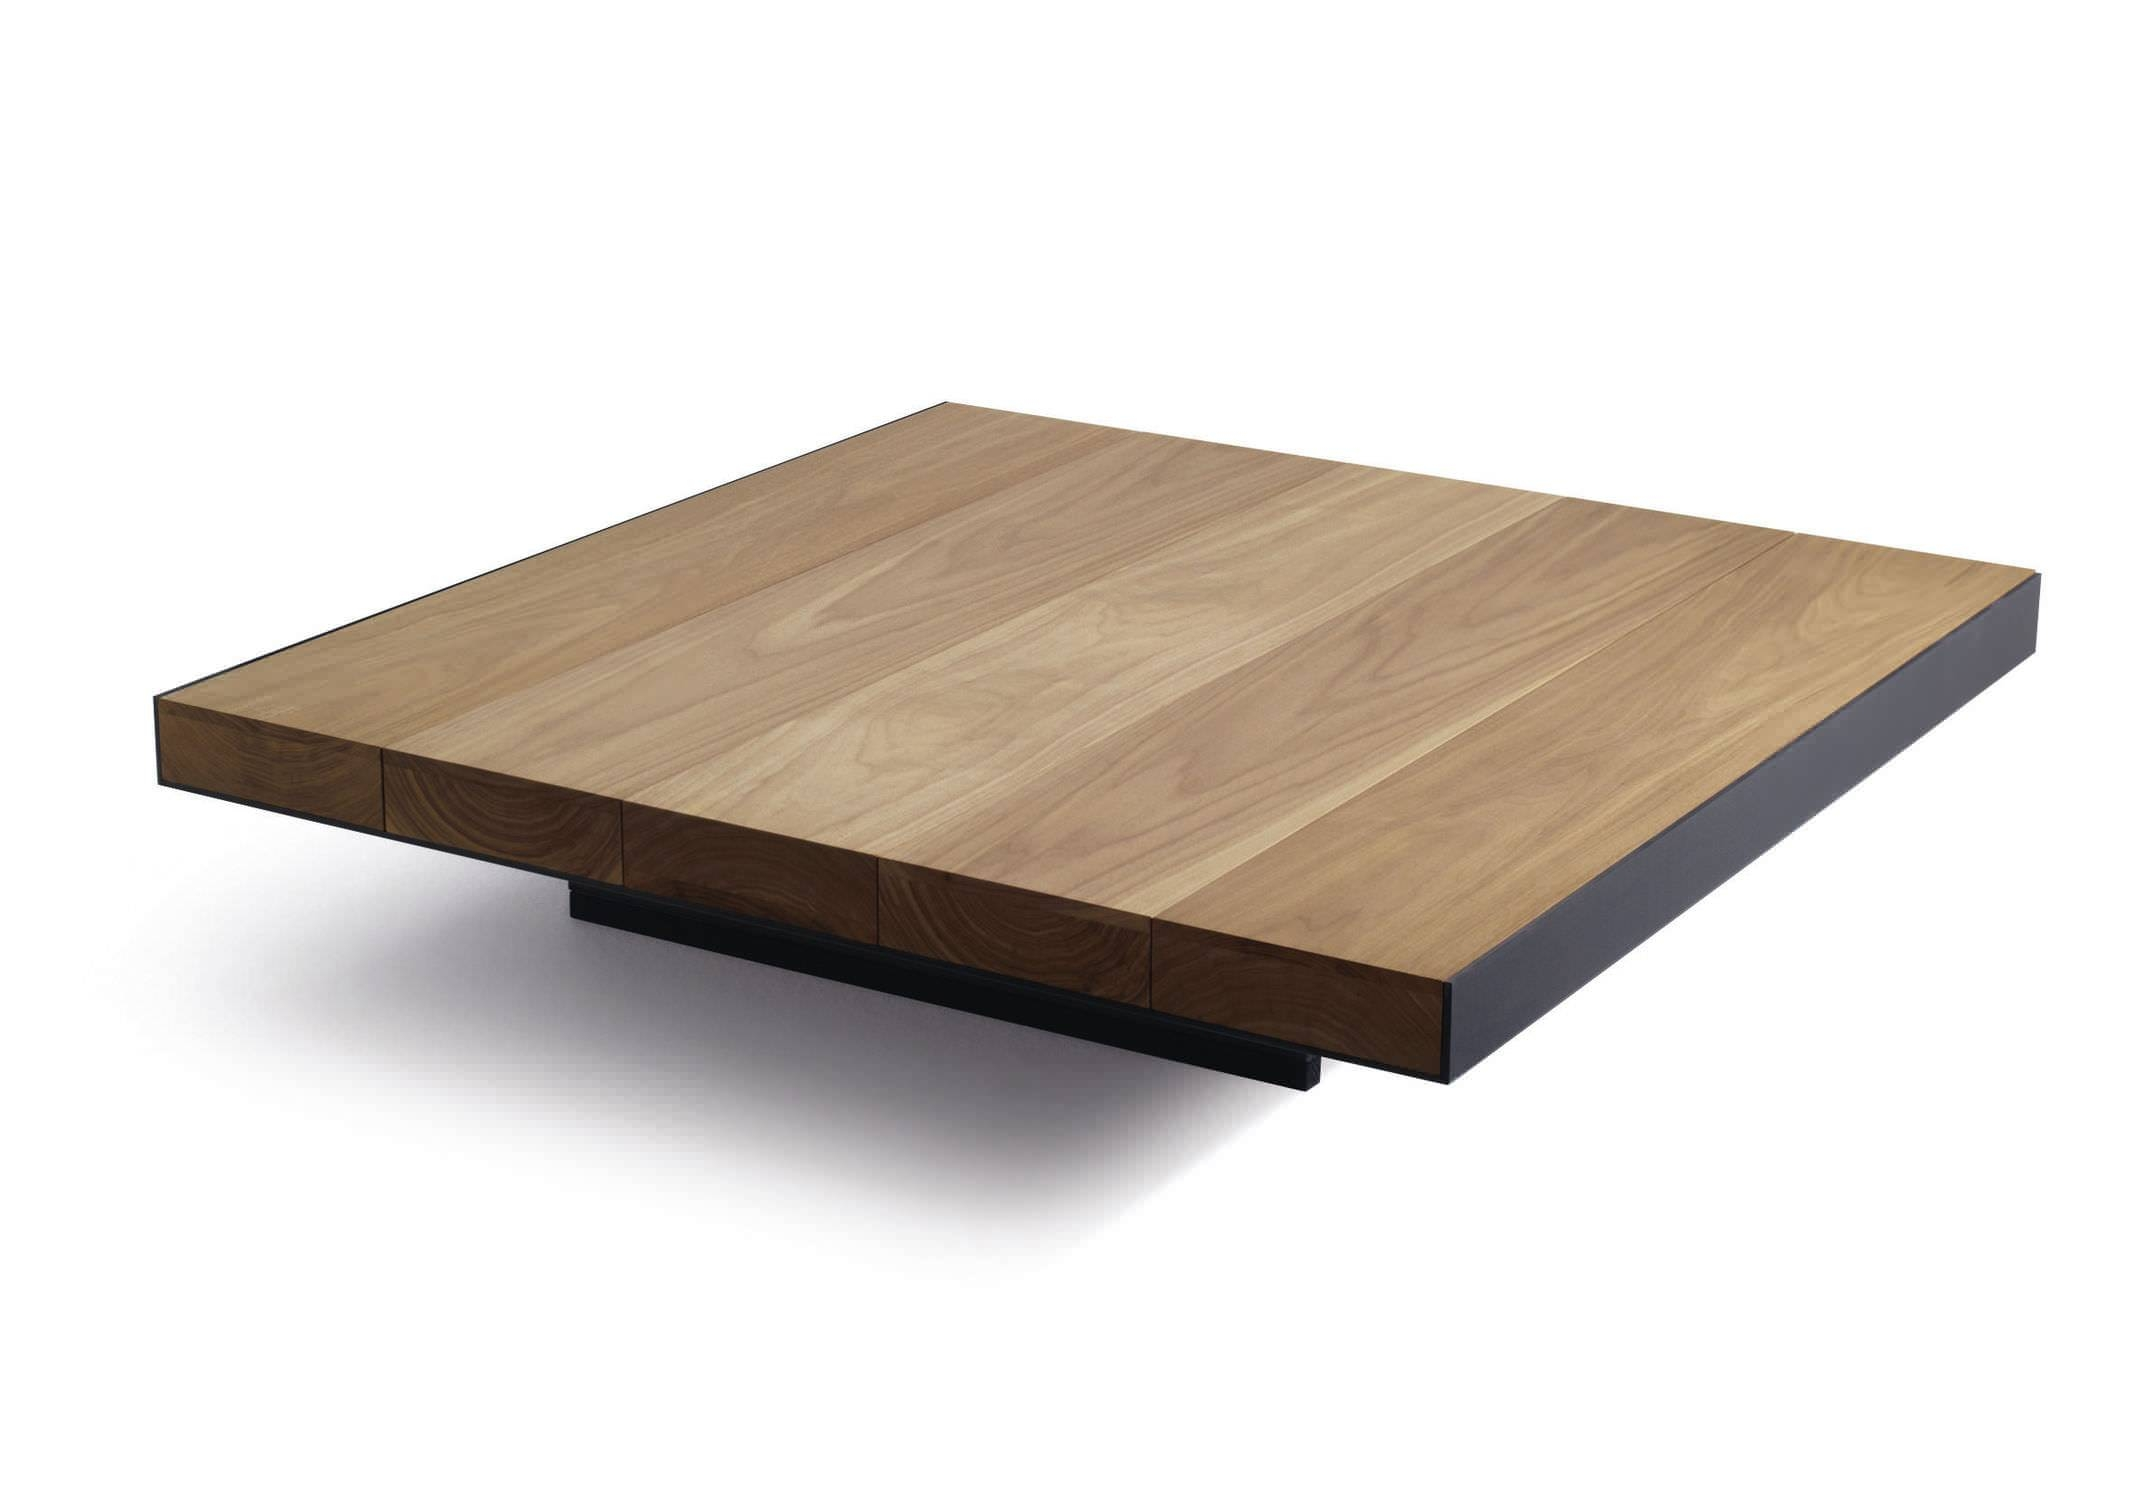 Contemporary Coffee Table / Metal / Walnut / Square - Deck - Lema Home with regard to Low Square Wooden Coffee Tables (Image 9 of 30)